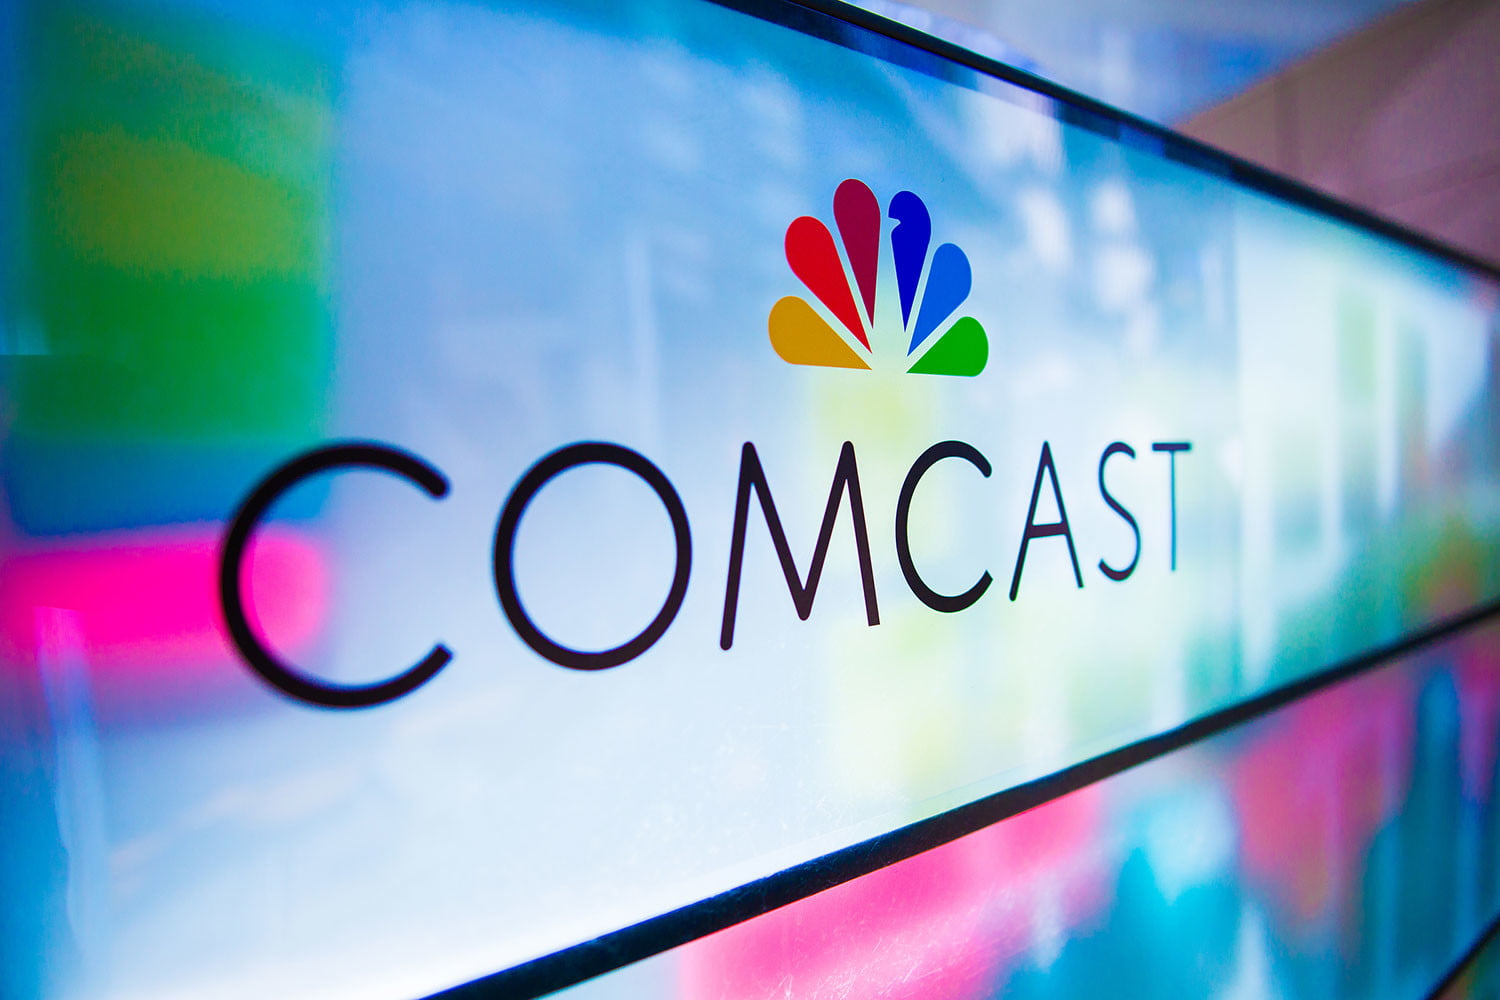 Comcast Lowers Prices for Shared Data on Xfinity Mobile